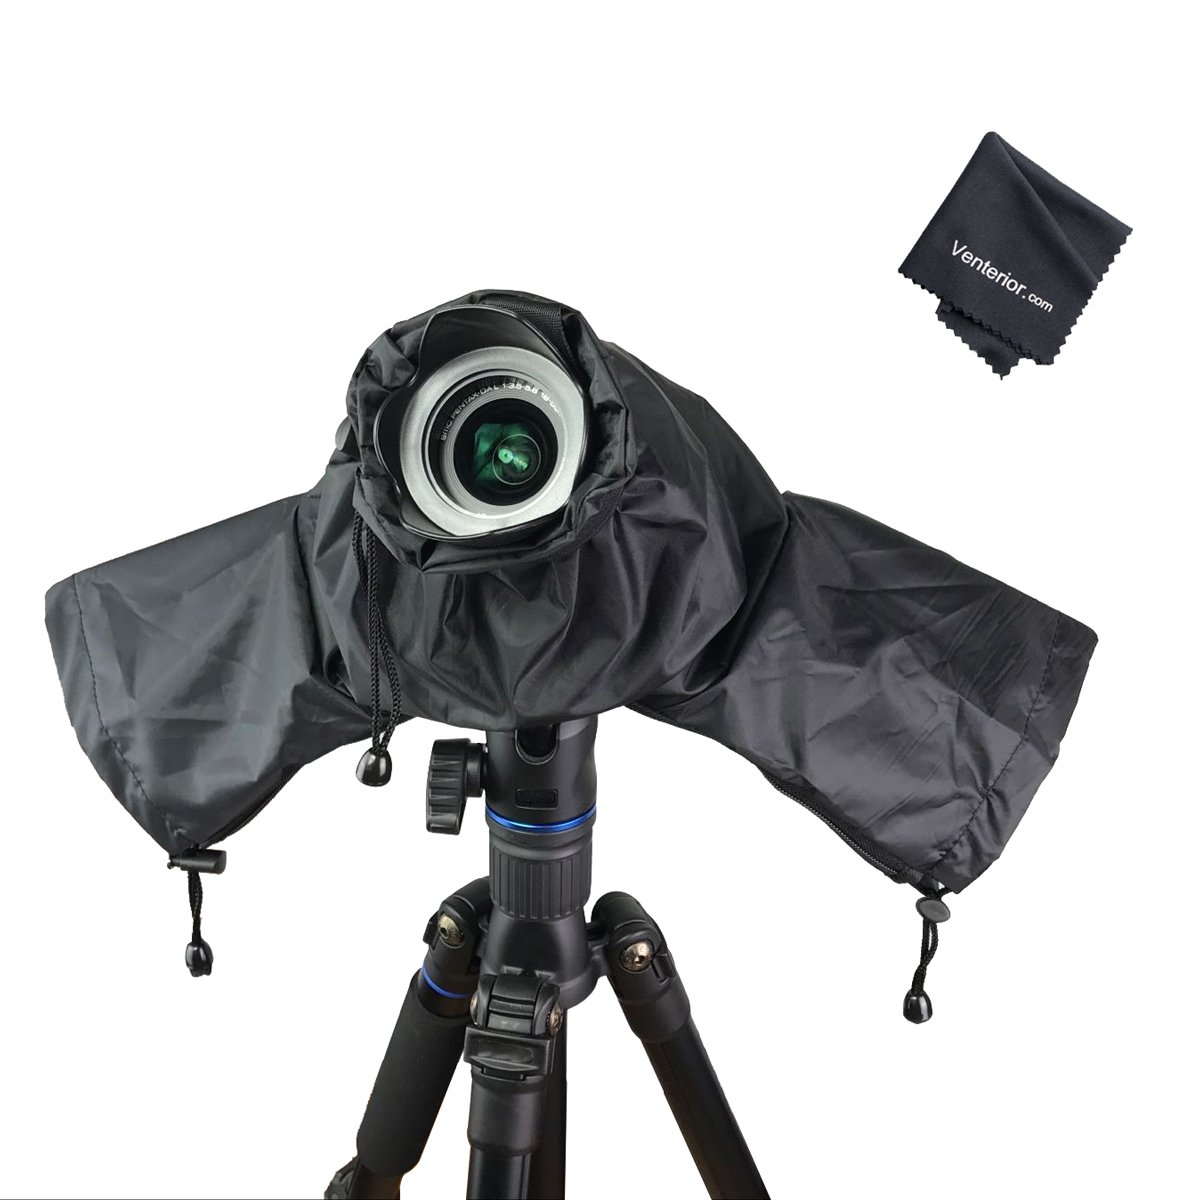 Venterior Waterproof Rain Cover Camera Protector for Canon Nikon Pentax and Other DSLR Cameras - Protect from Rain Snow Dust Sand by Venterior